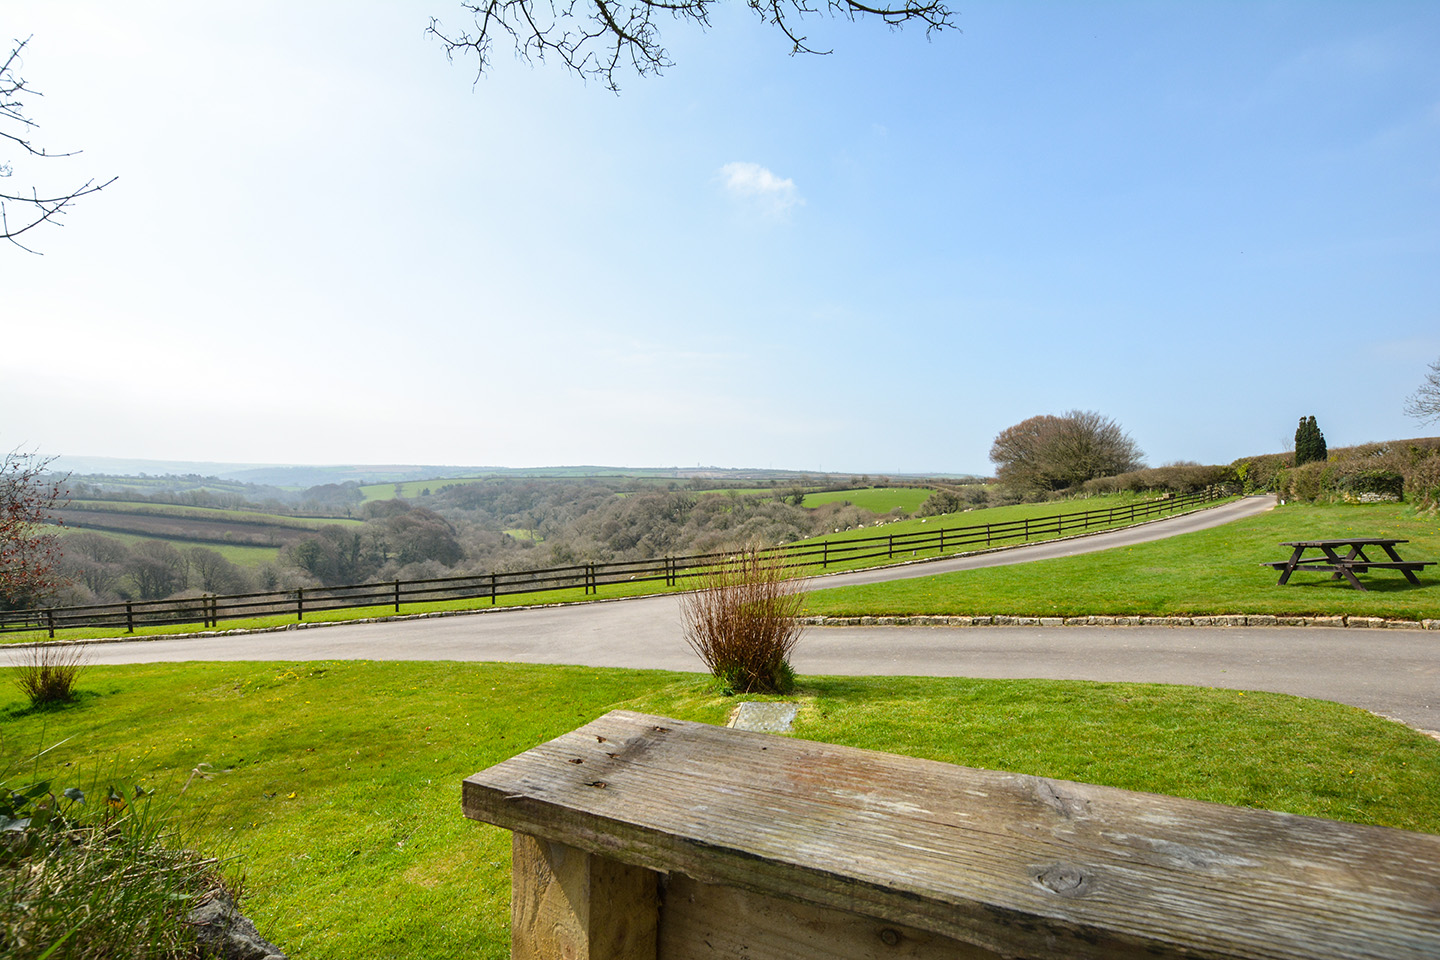 The view from Jingles luxury self catering holiday cottage at Penrose Burden in North Cornwall near Bodmin Moor.jpg